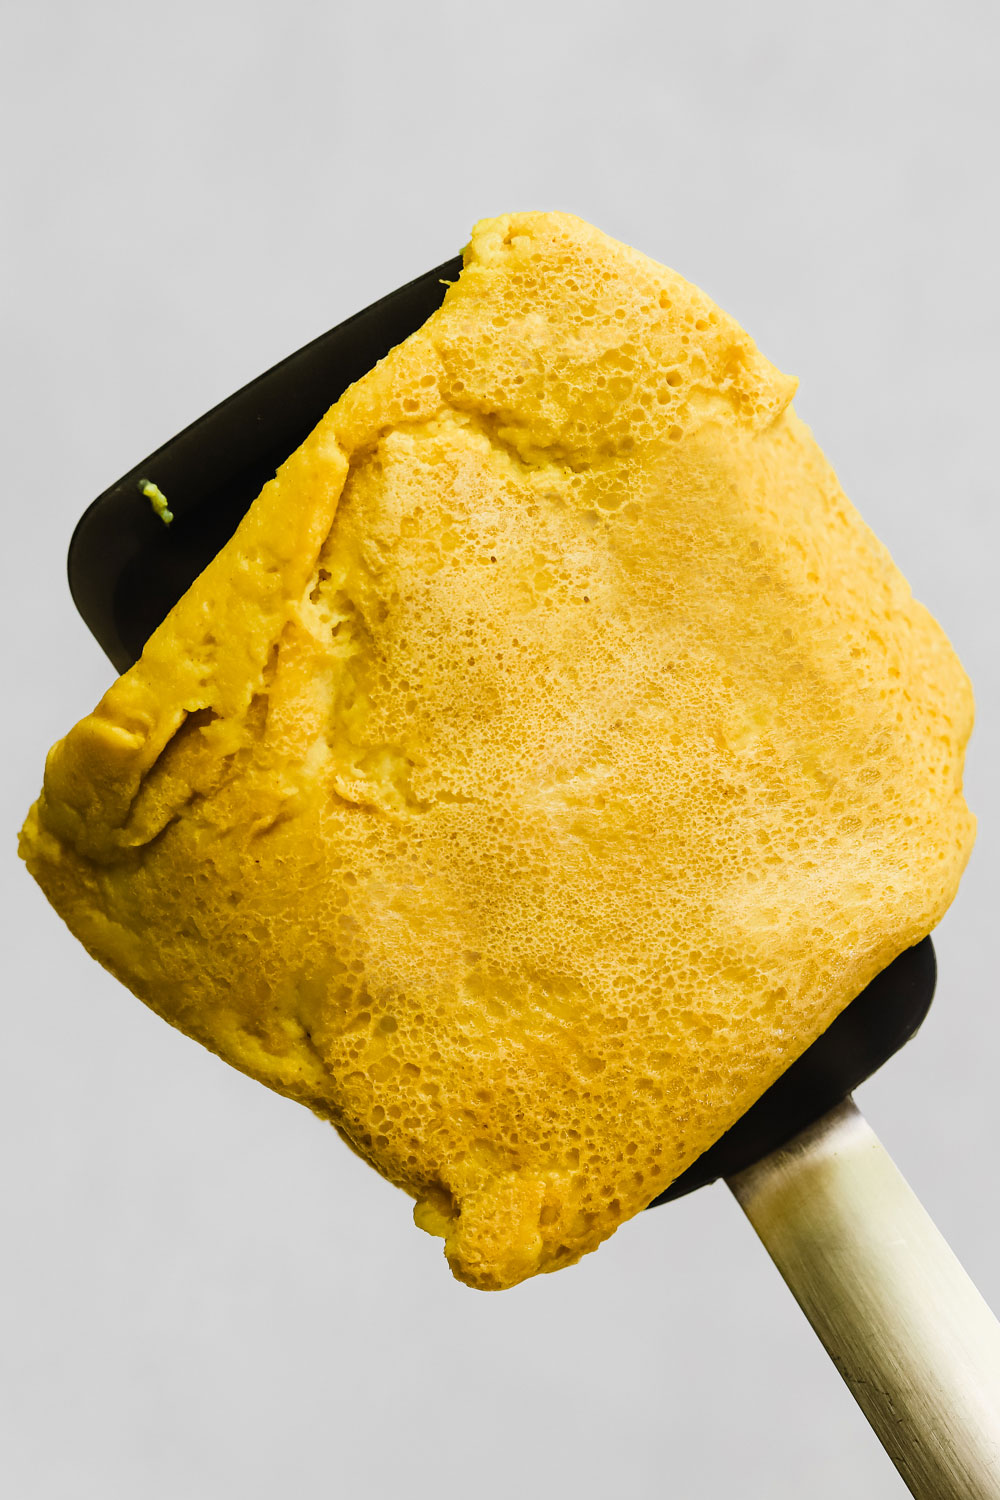 Very realistic vegan egg on a spatula.